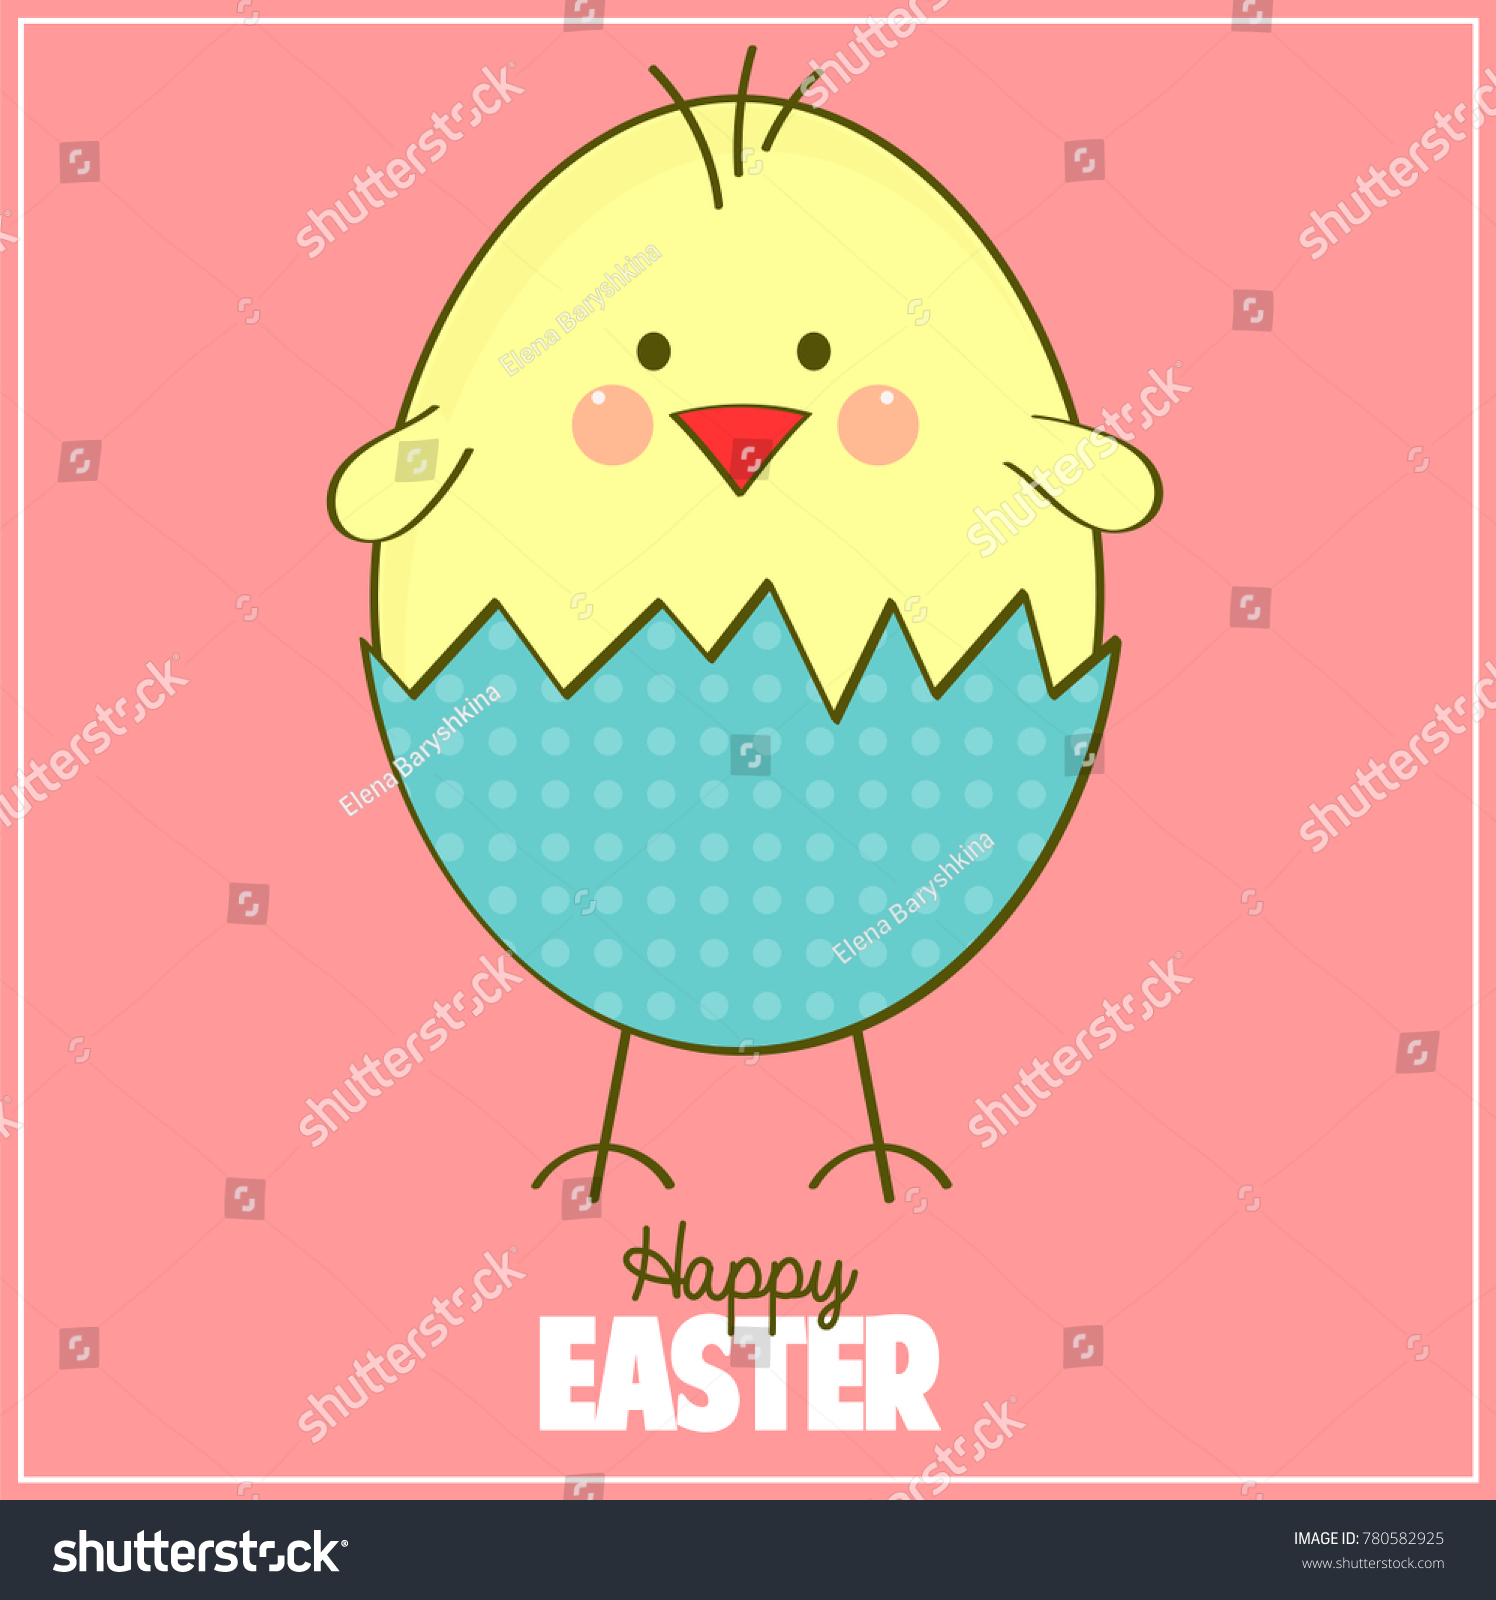 Royalty Free Stock Illustration of Happy Easter Card Cute Chick ...